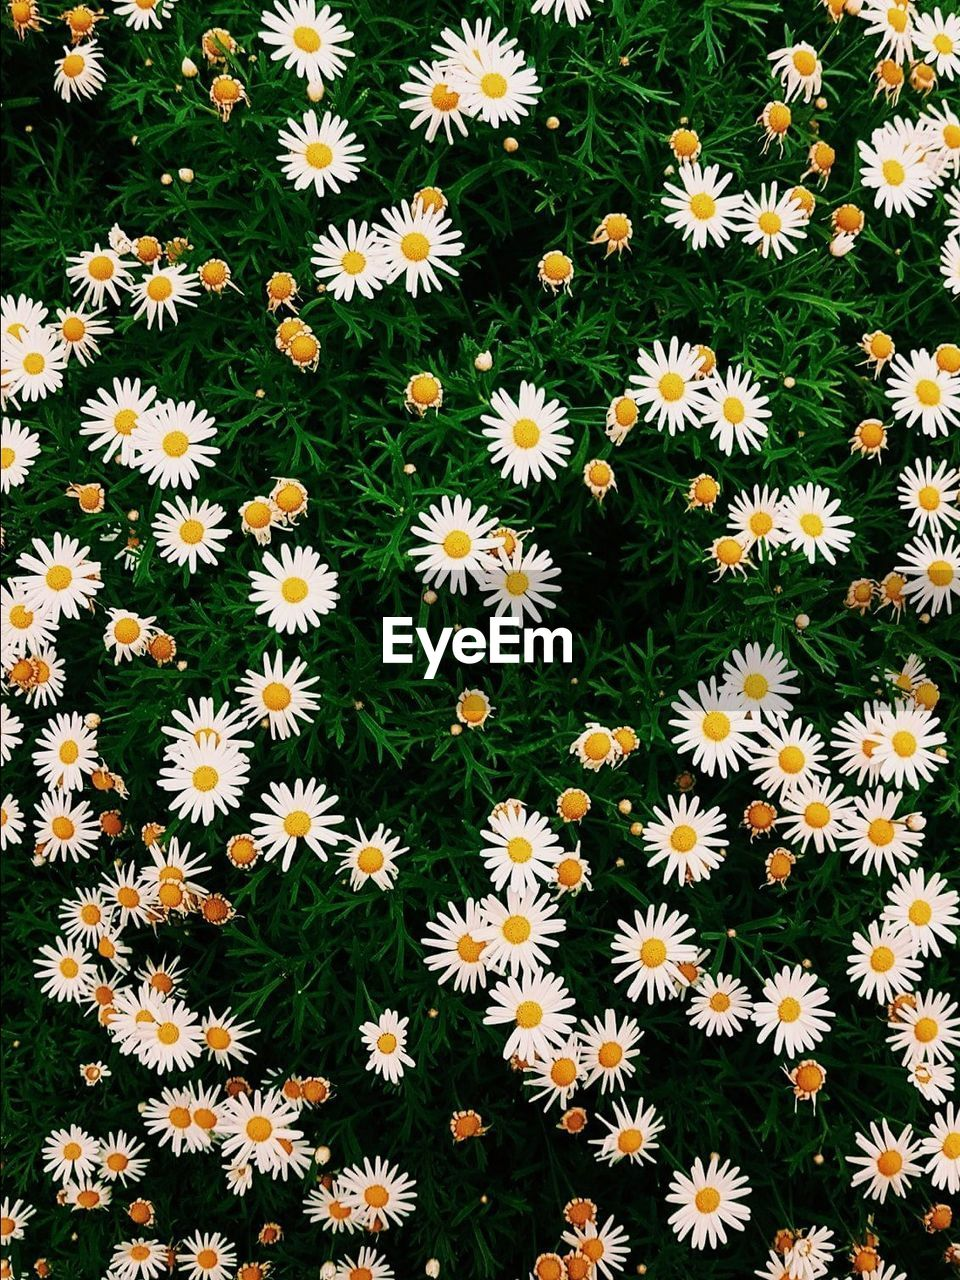 flower, petal, high angle view, fragility, flower head, freshness, blooming, no people, nature, backgrounds, growth, beauty in nature, day, plant, outdoors, close-up, black-eyed susan, osteospermum